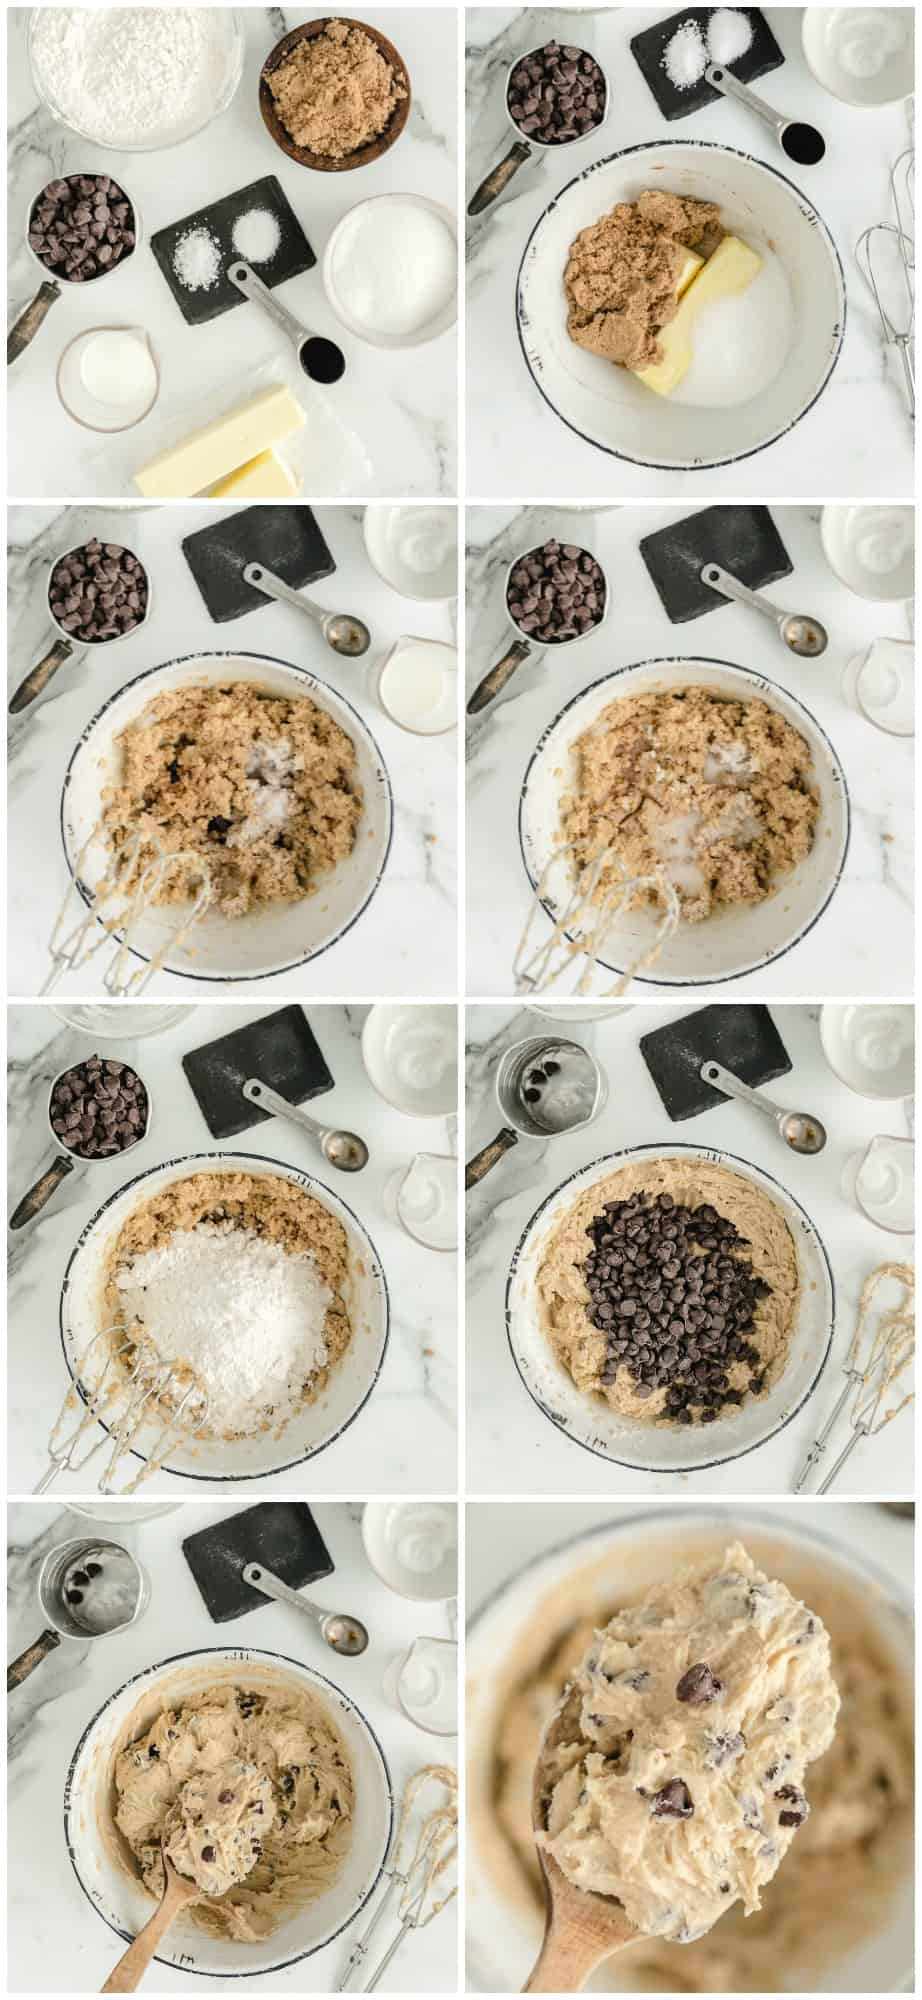 how to make edible chocolate chip cookie dough step by step photos